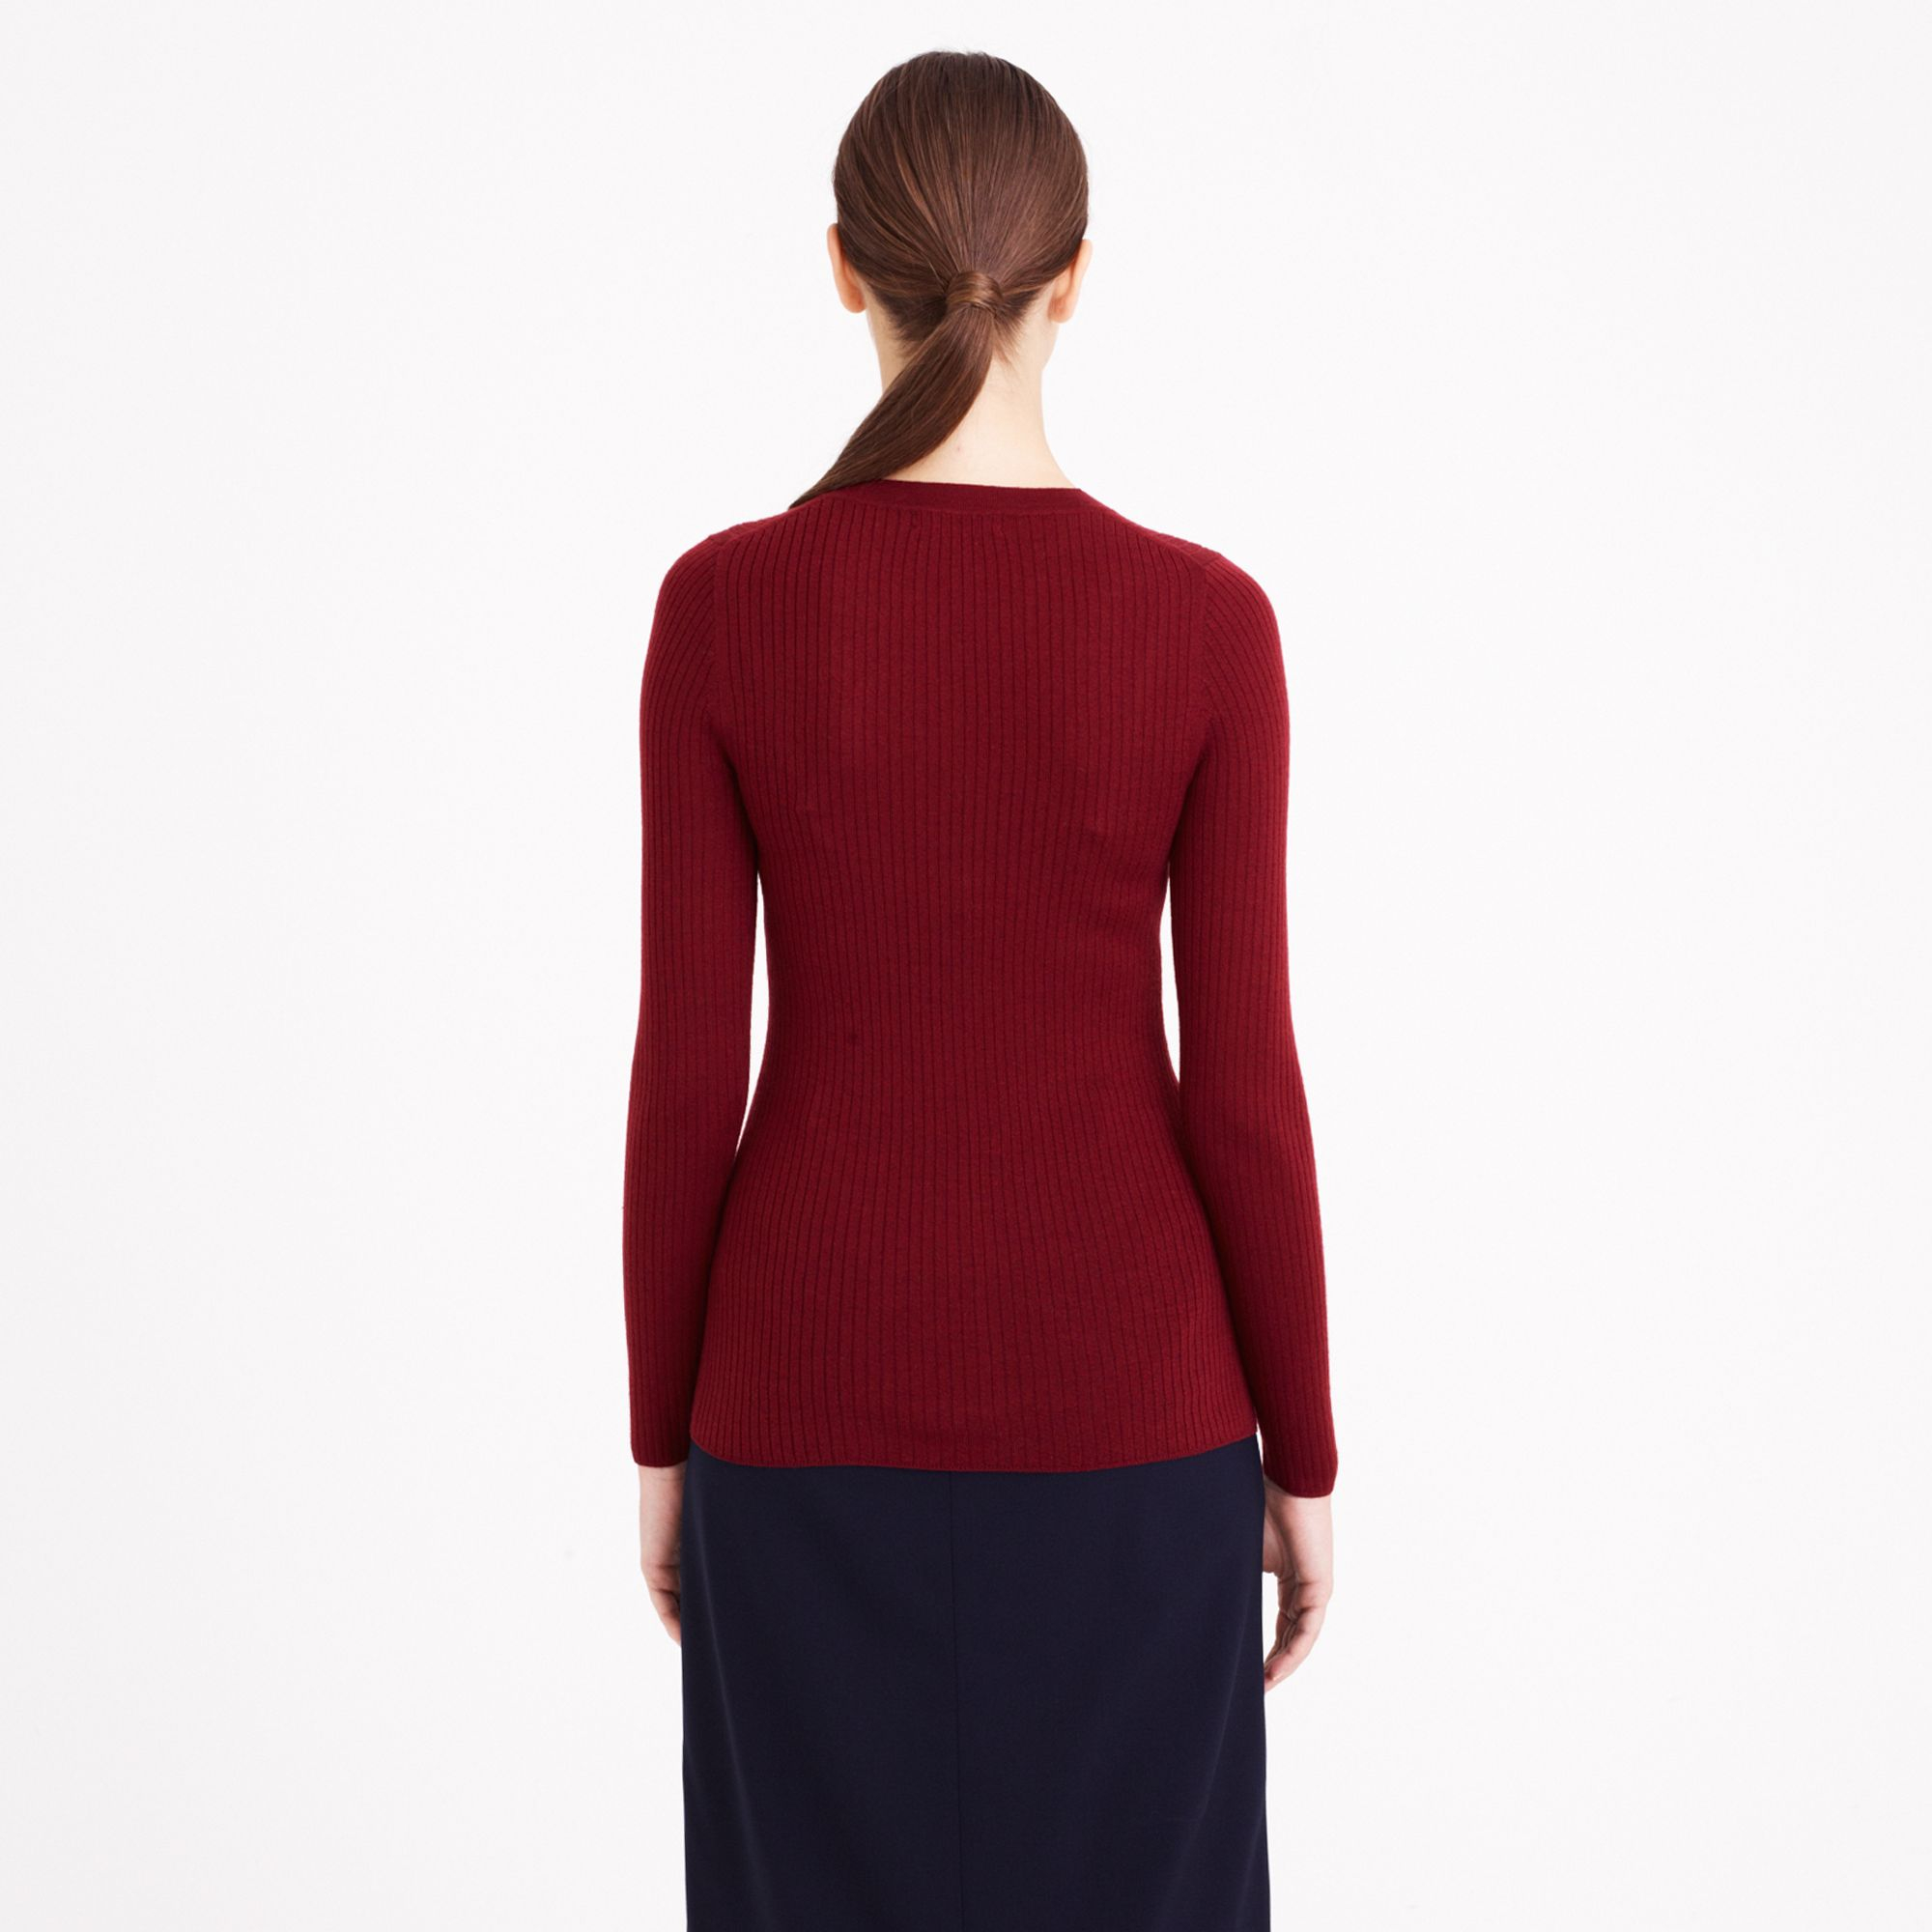 J.crew Long Merino Wool Ribbed Sweater in Red | Lyst